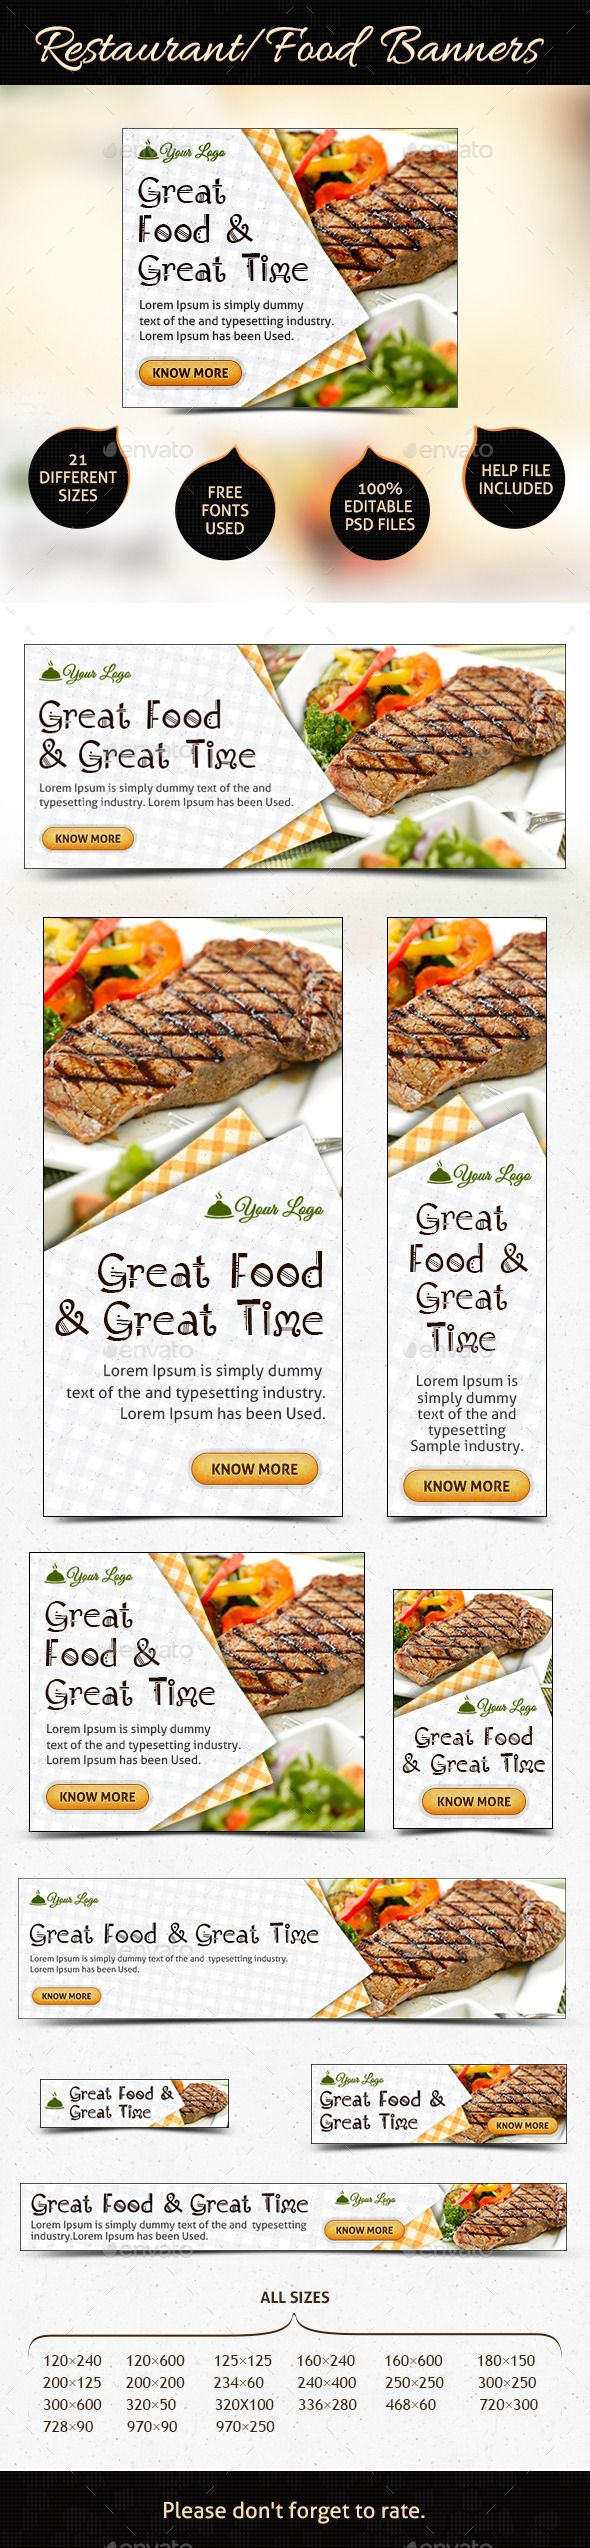 Restaurant Web Banner Ads Template #design #ads Download: http://graphicriver.net/item/restaurant-web-banner-ads/12369943?ref=ksioks